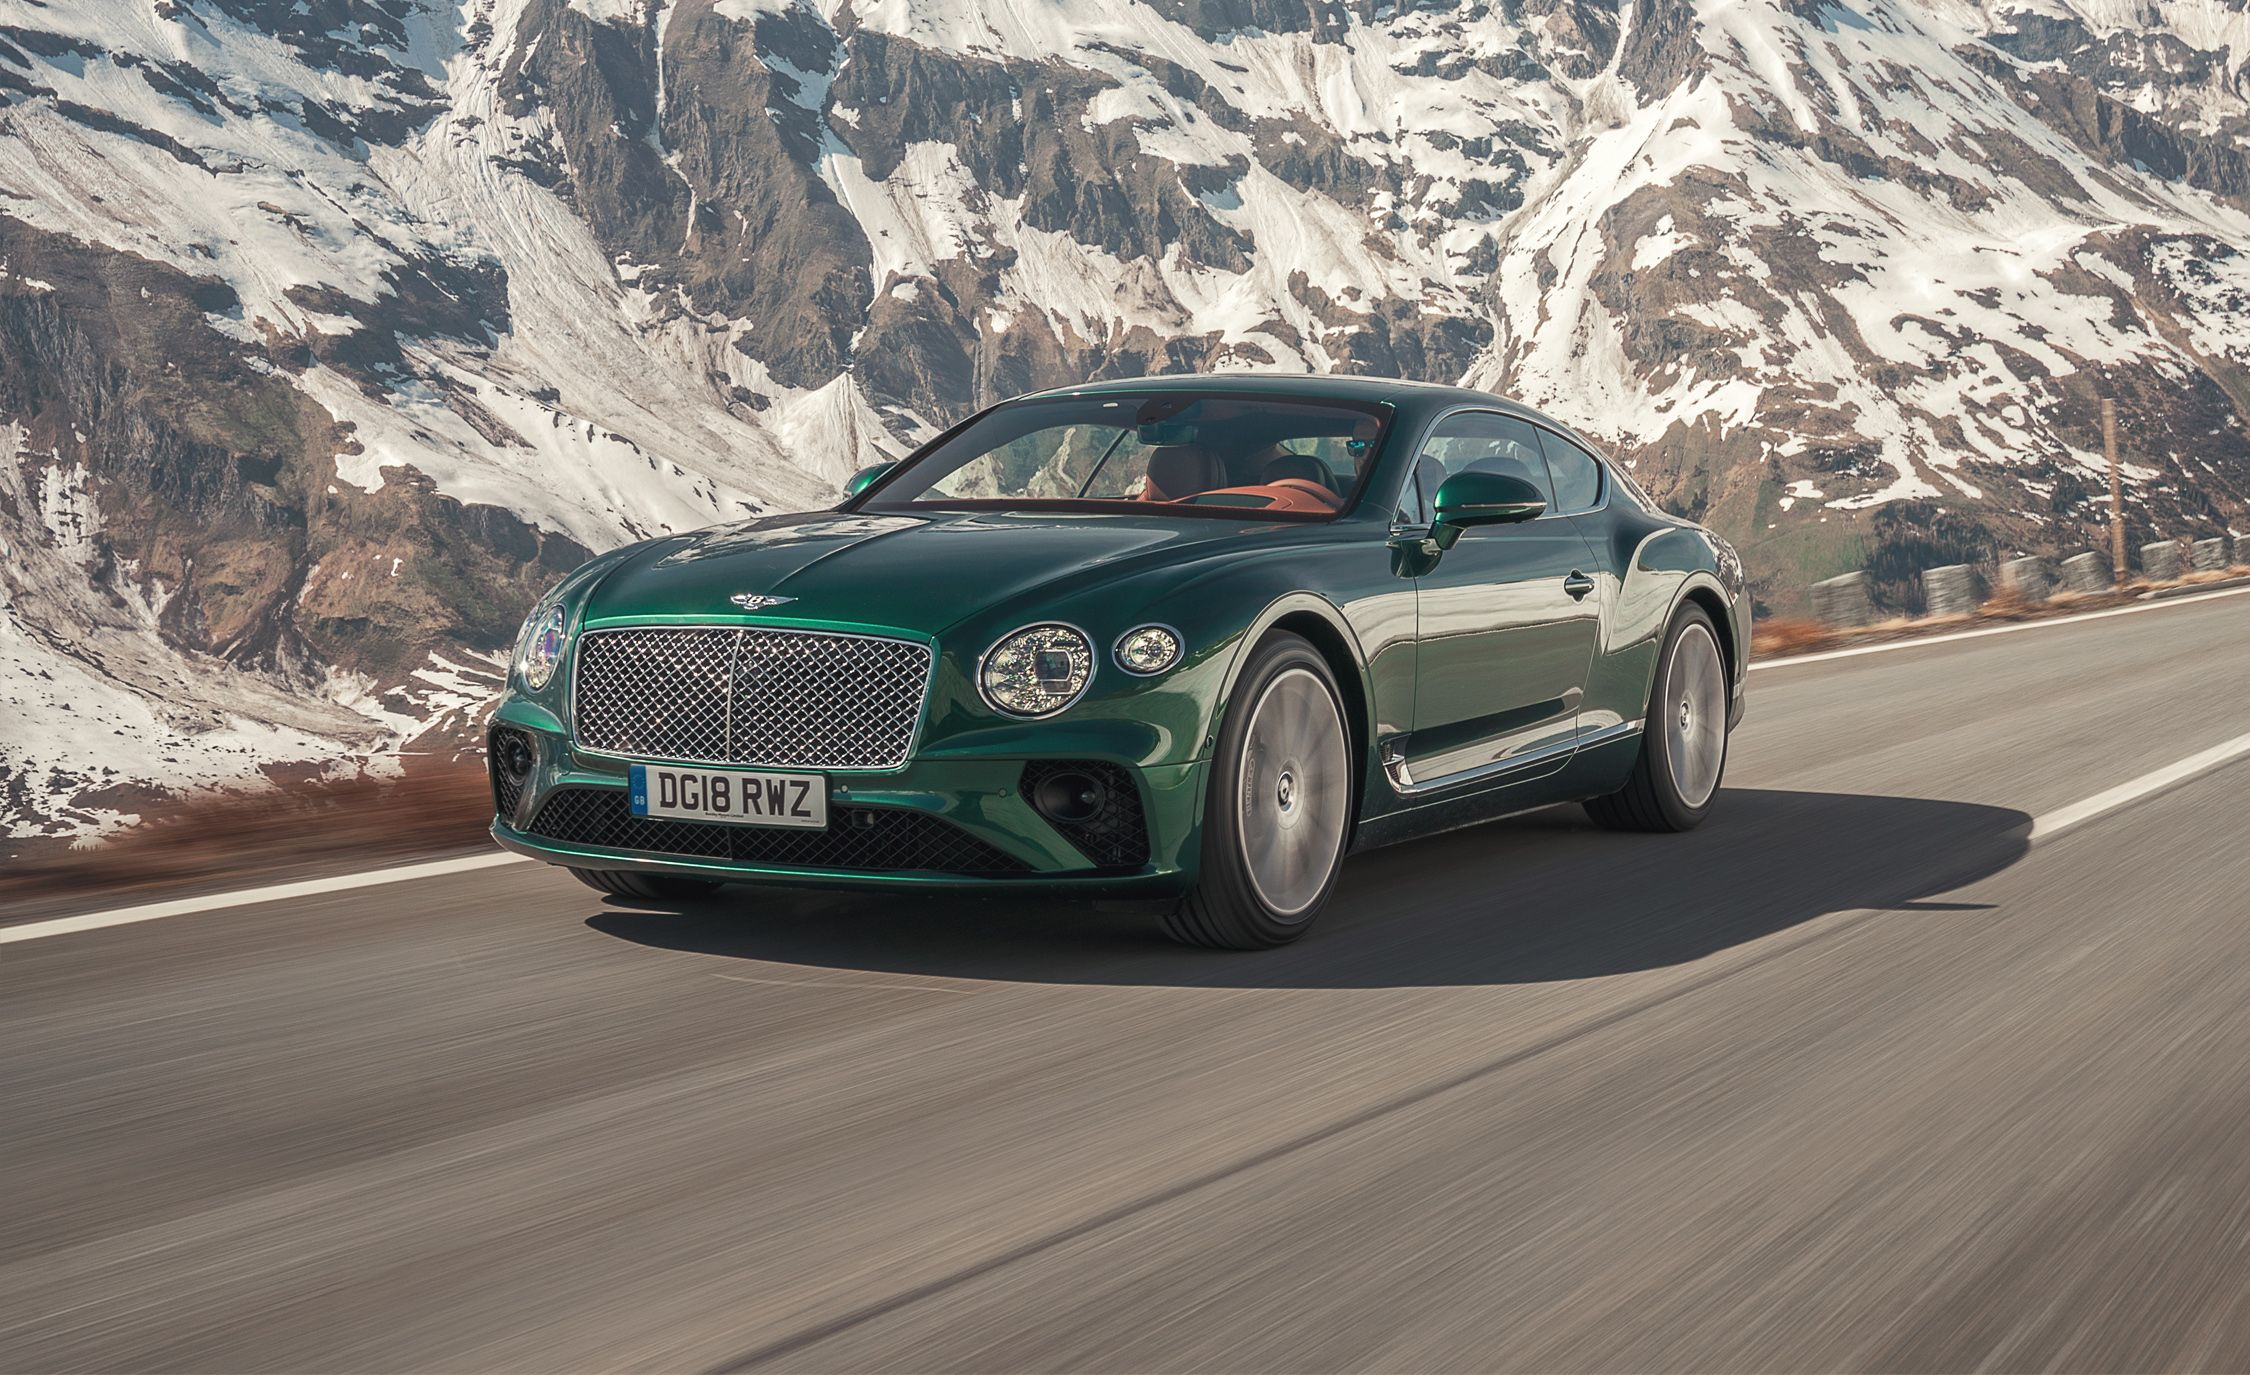 2020 bentley continental gt reviews | bentley continental gt price